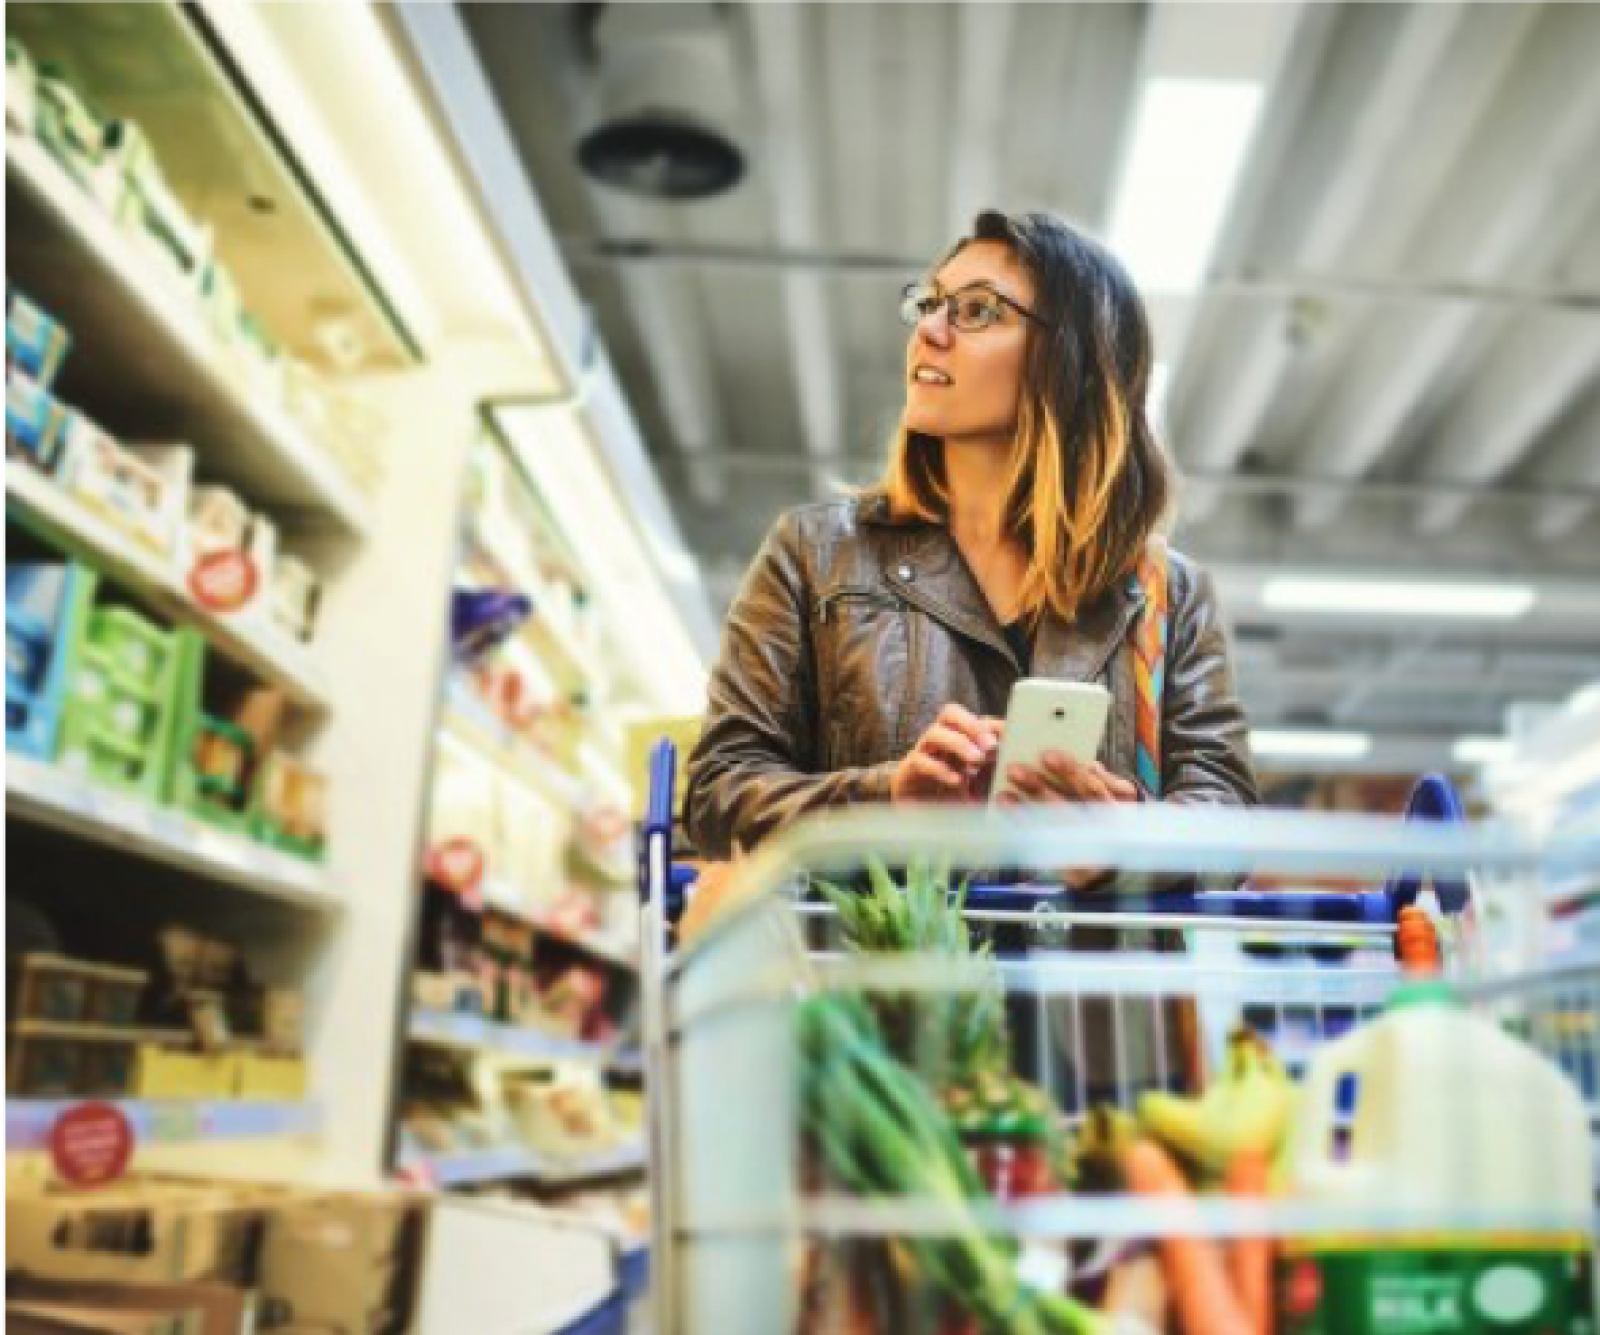 Image of woman shopping in grocery store. She is holding a phone, looking at the dairy aisle.